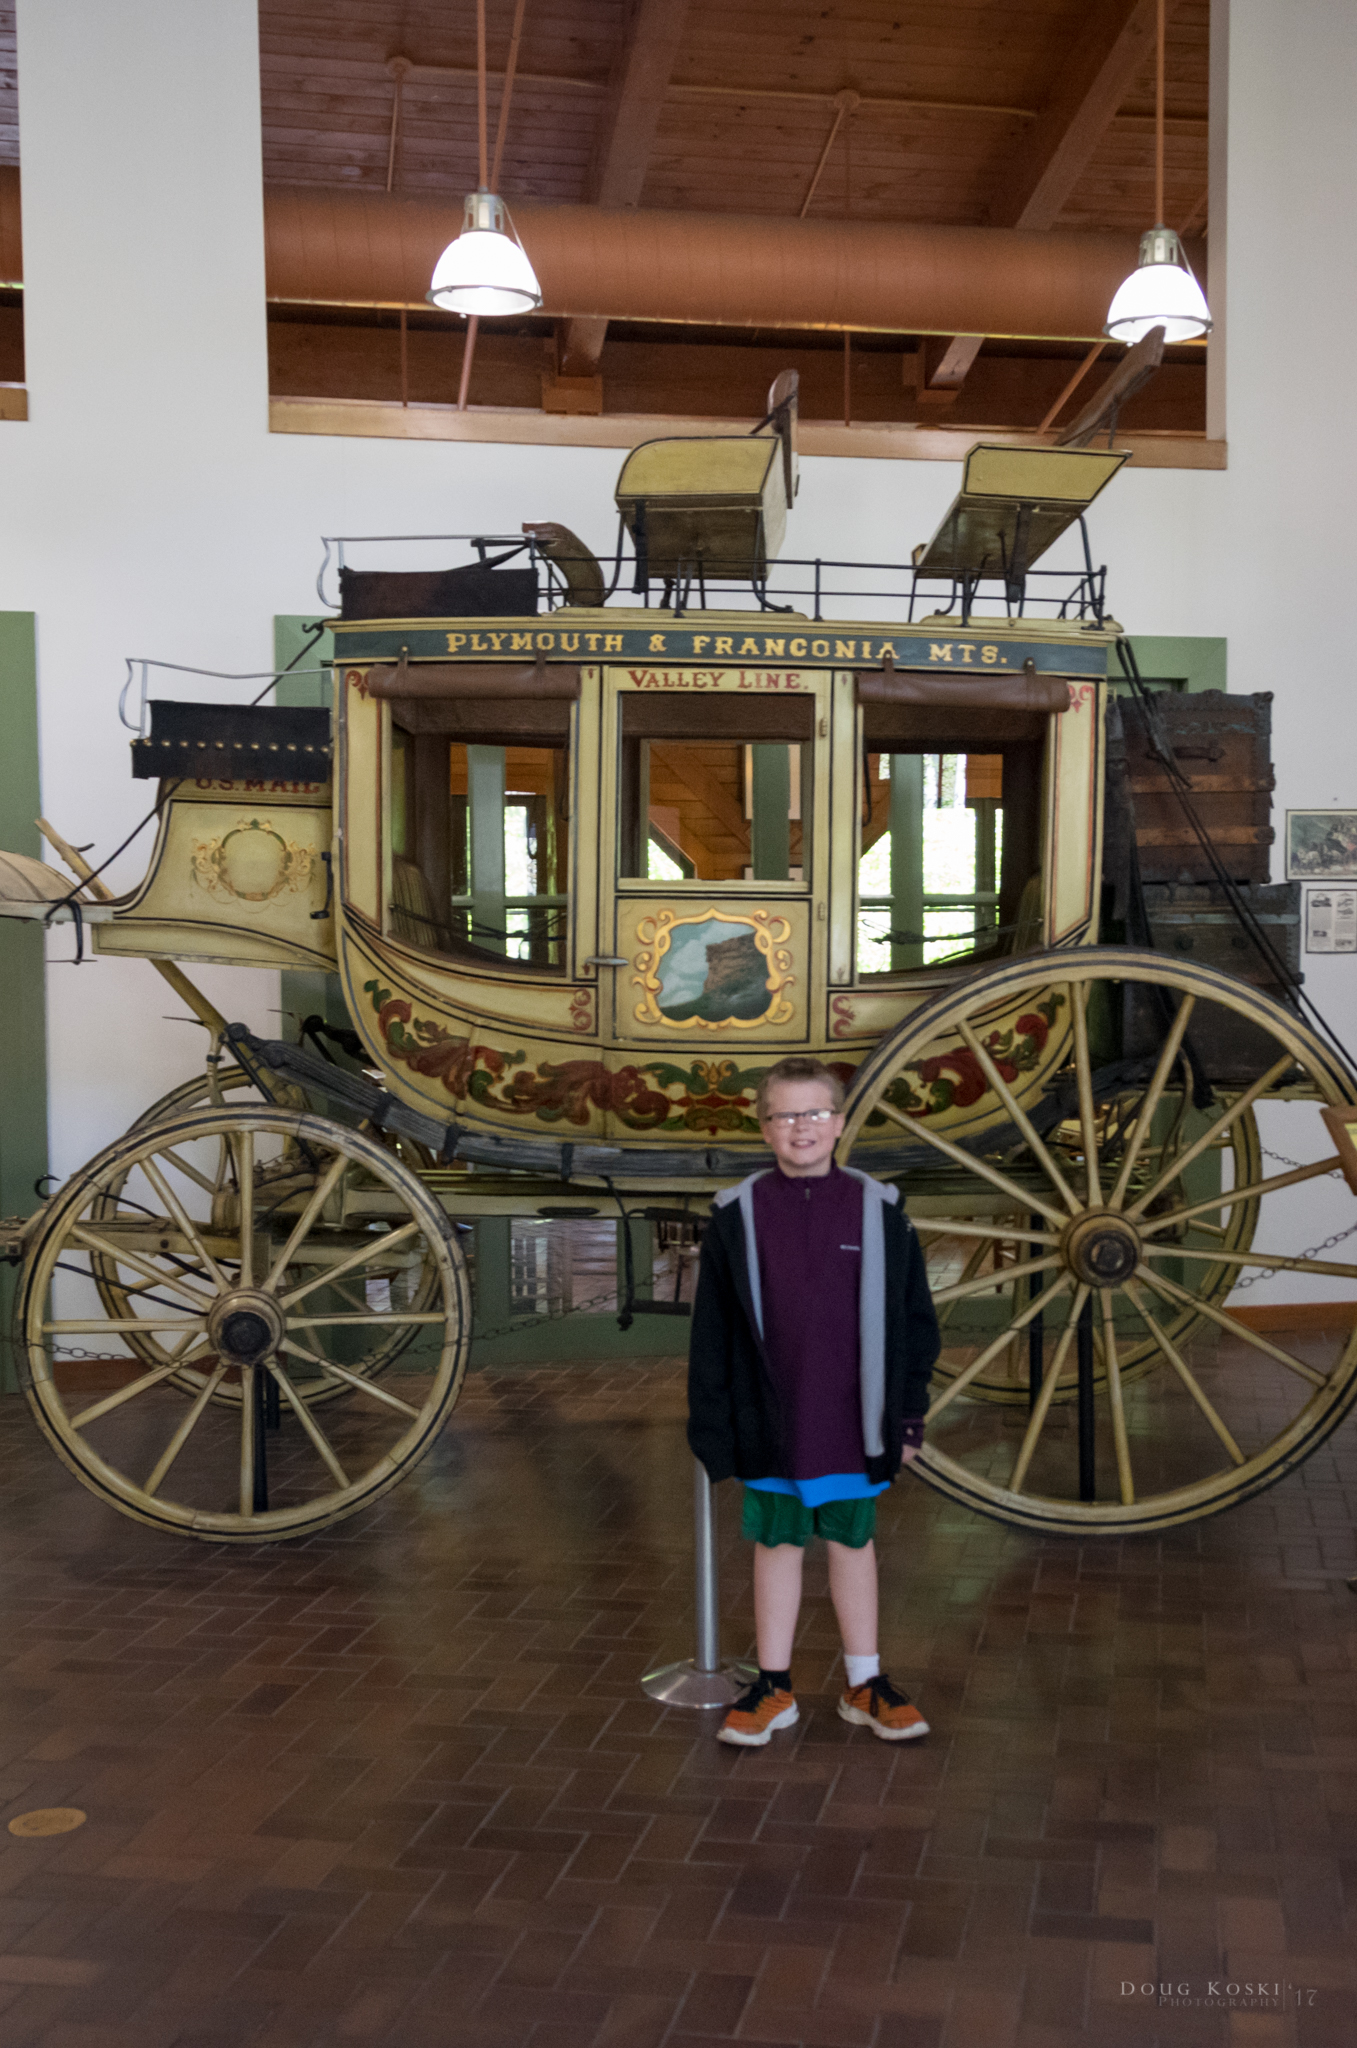 The Antique Carriage - in the main lobby was also a find that Andy thought was pretty cool to see in person.